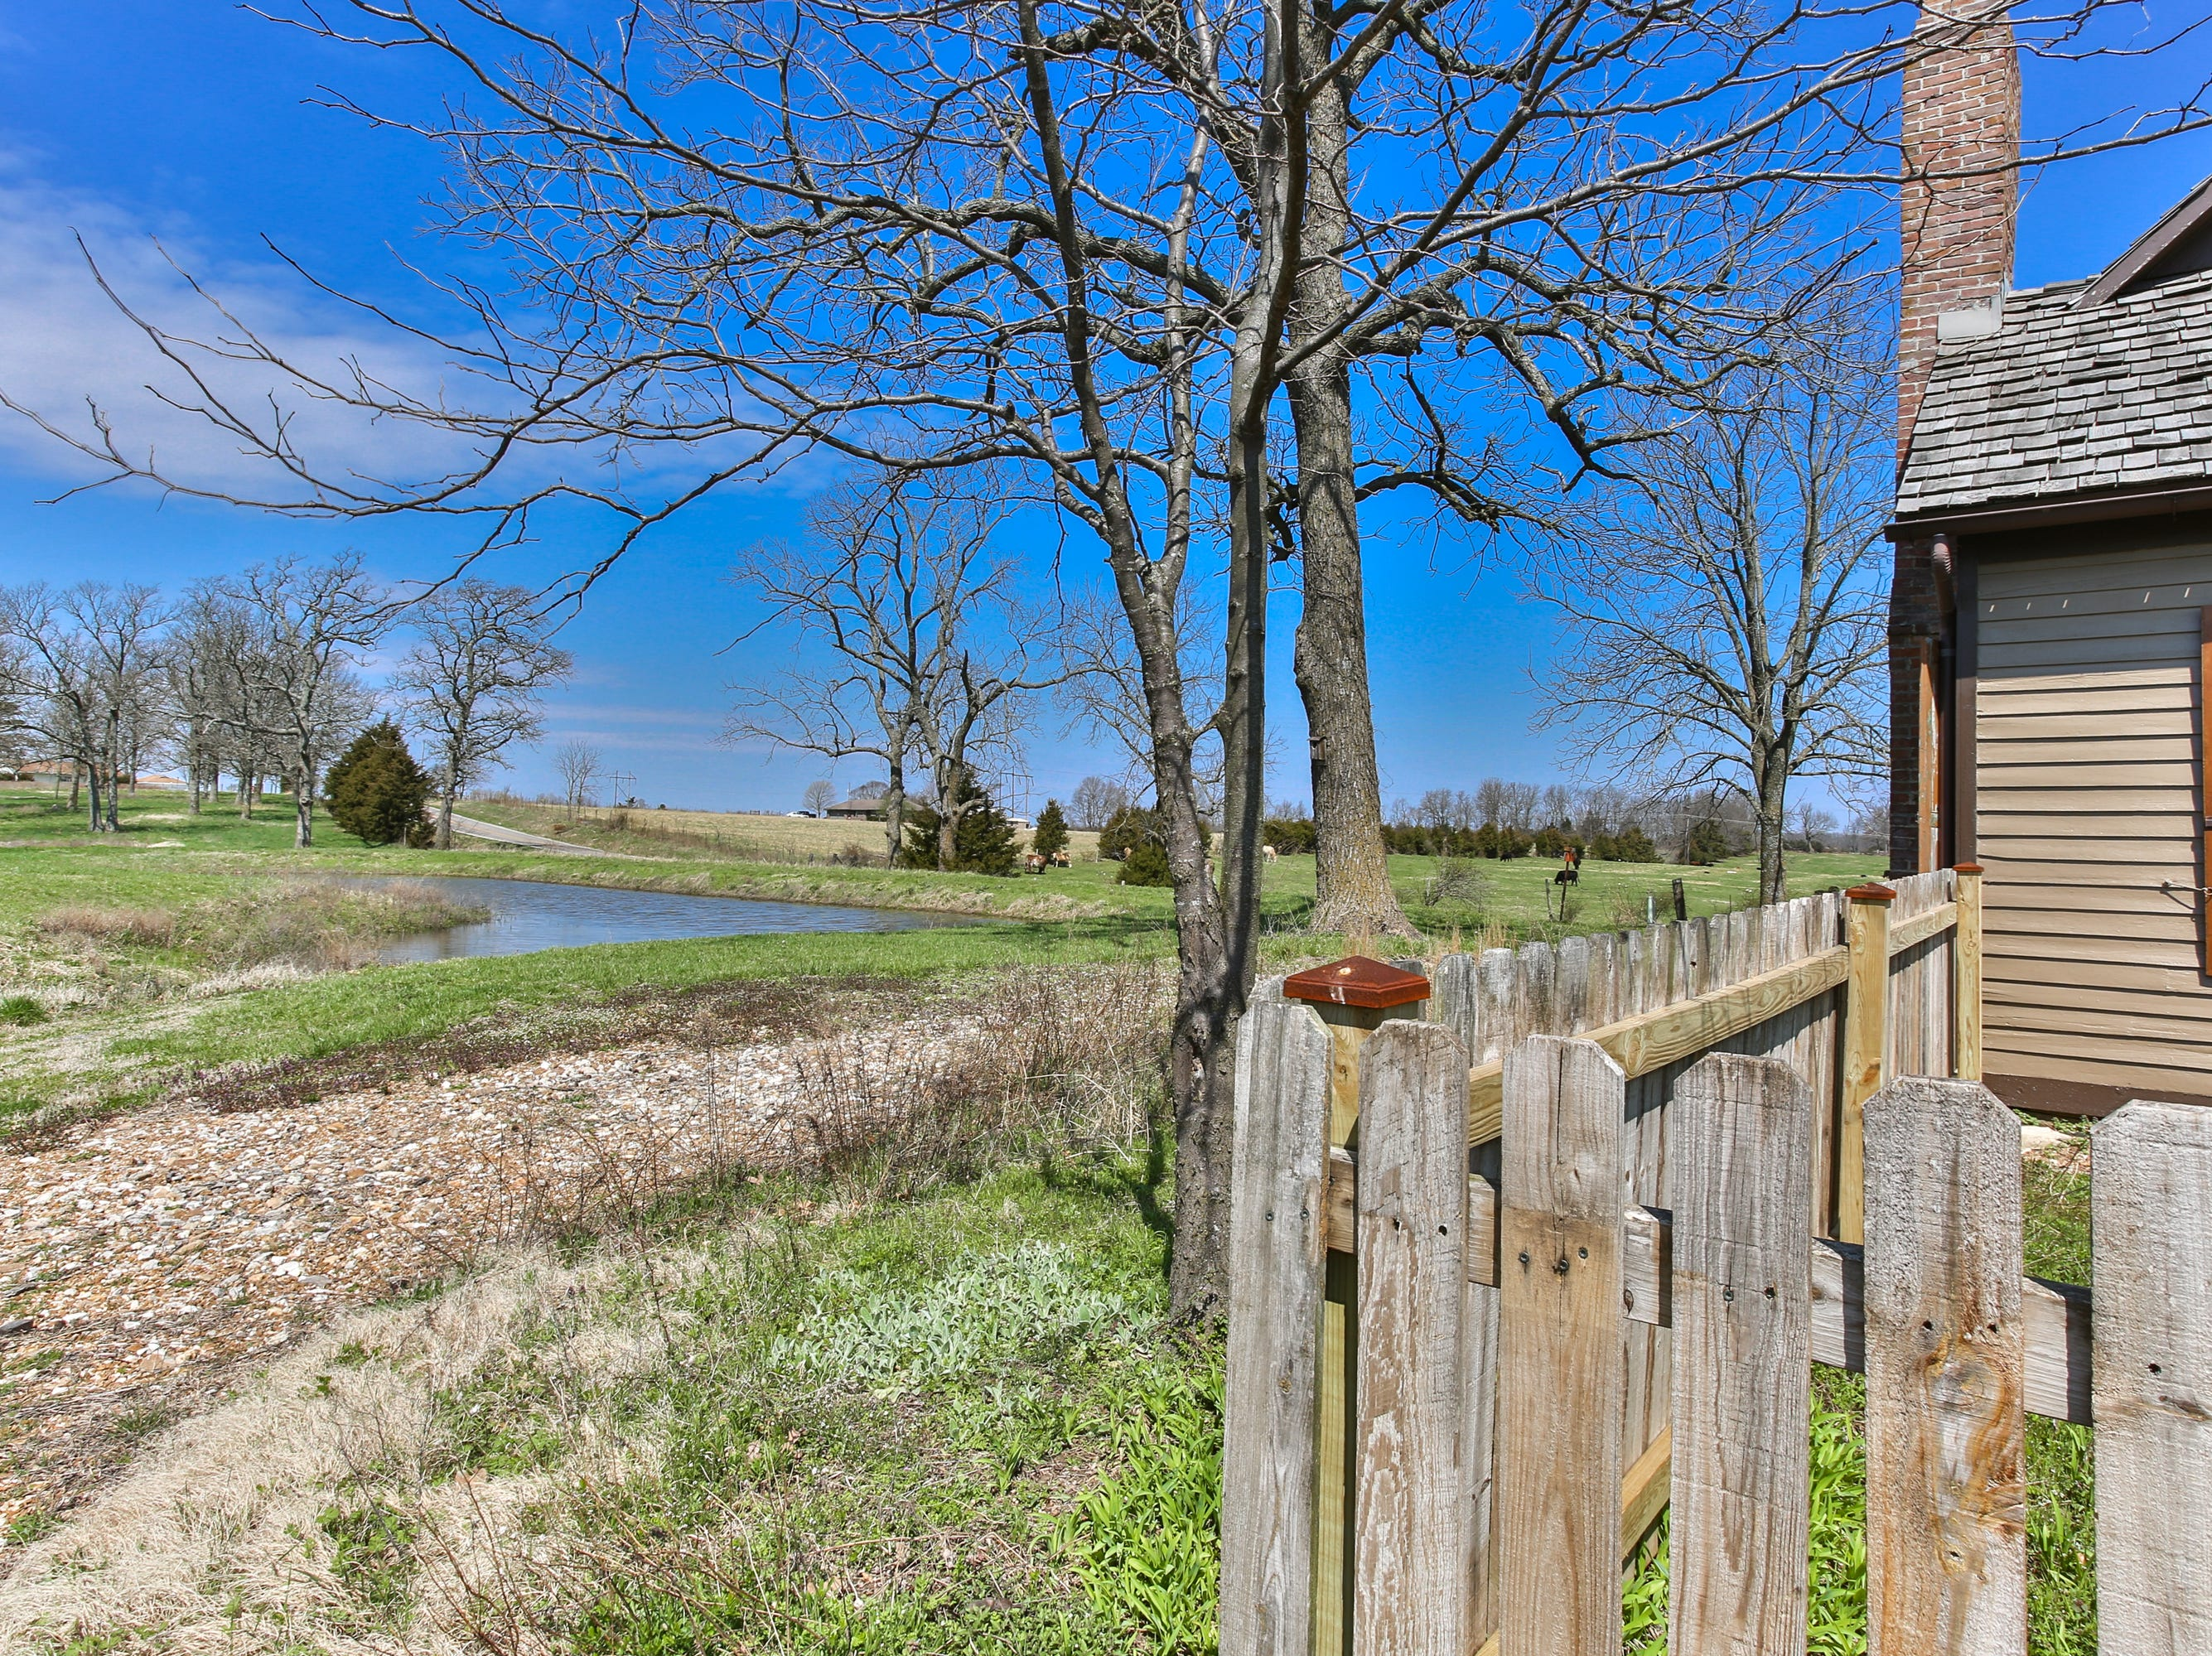 Bill and Lois Jefferson's Storybook Barn in Rogersville on April 2nd, 2019.